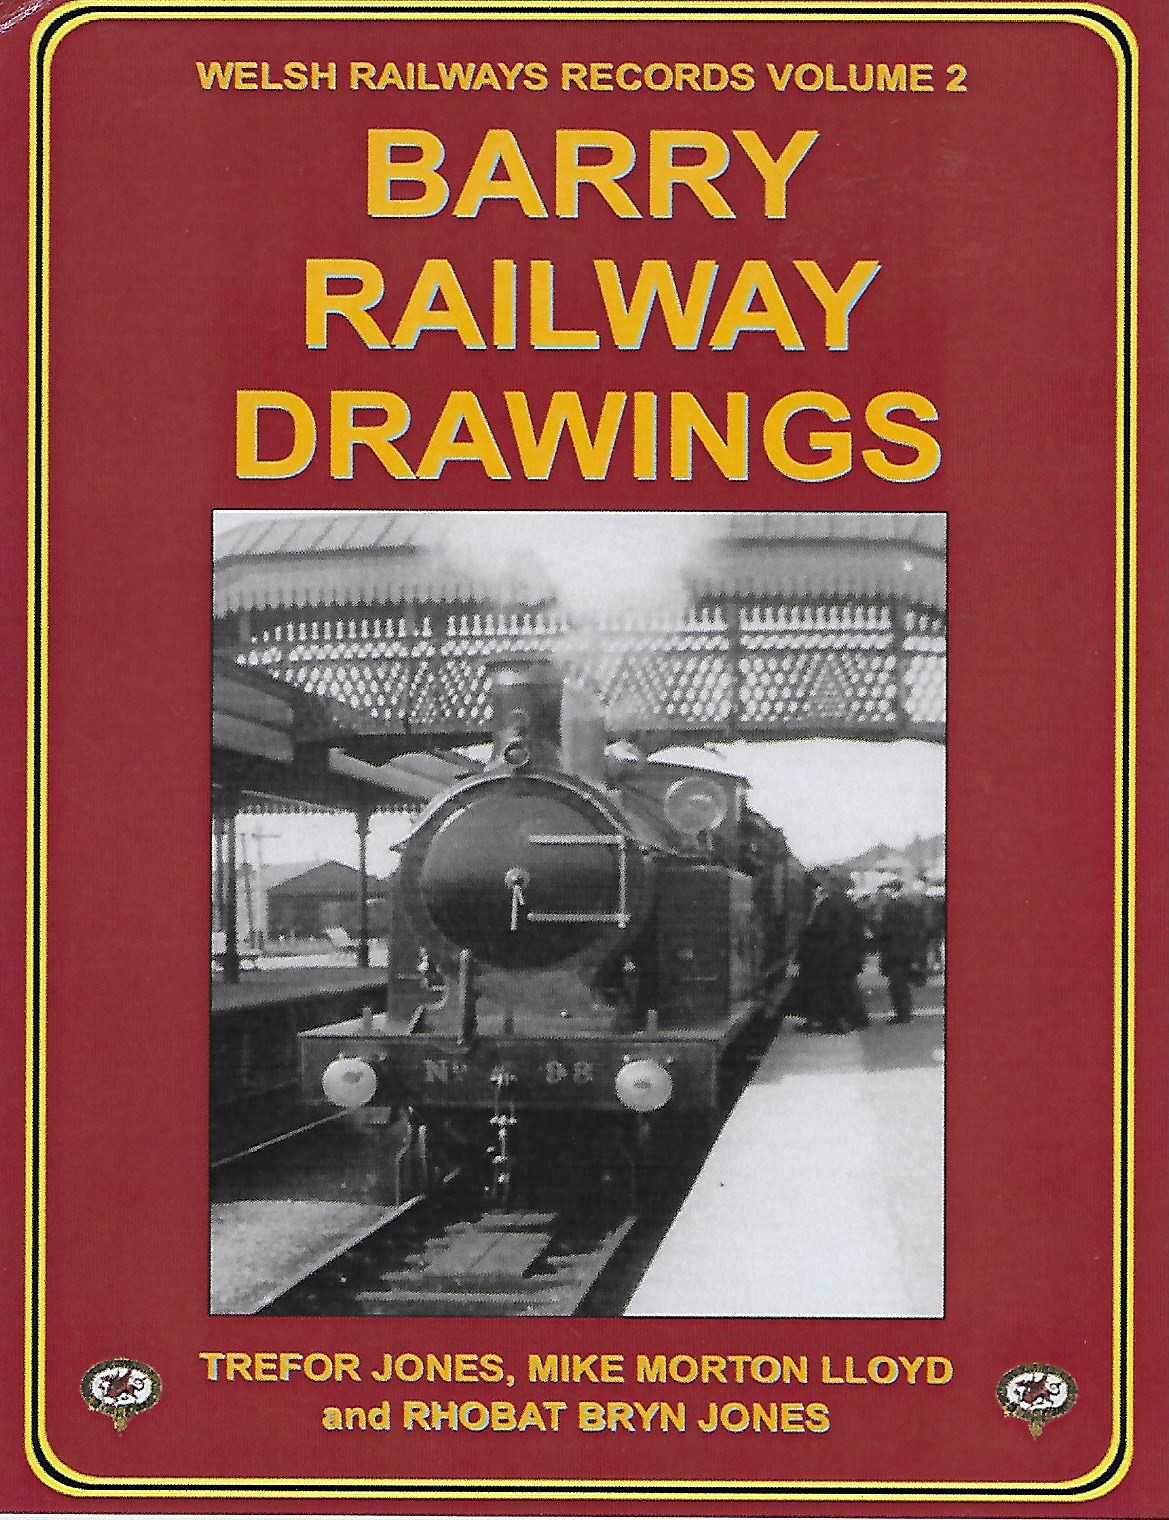 Barry Railway Drawings